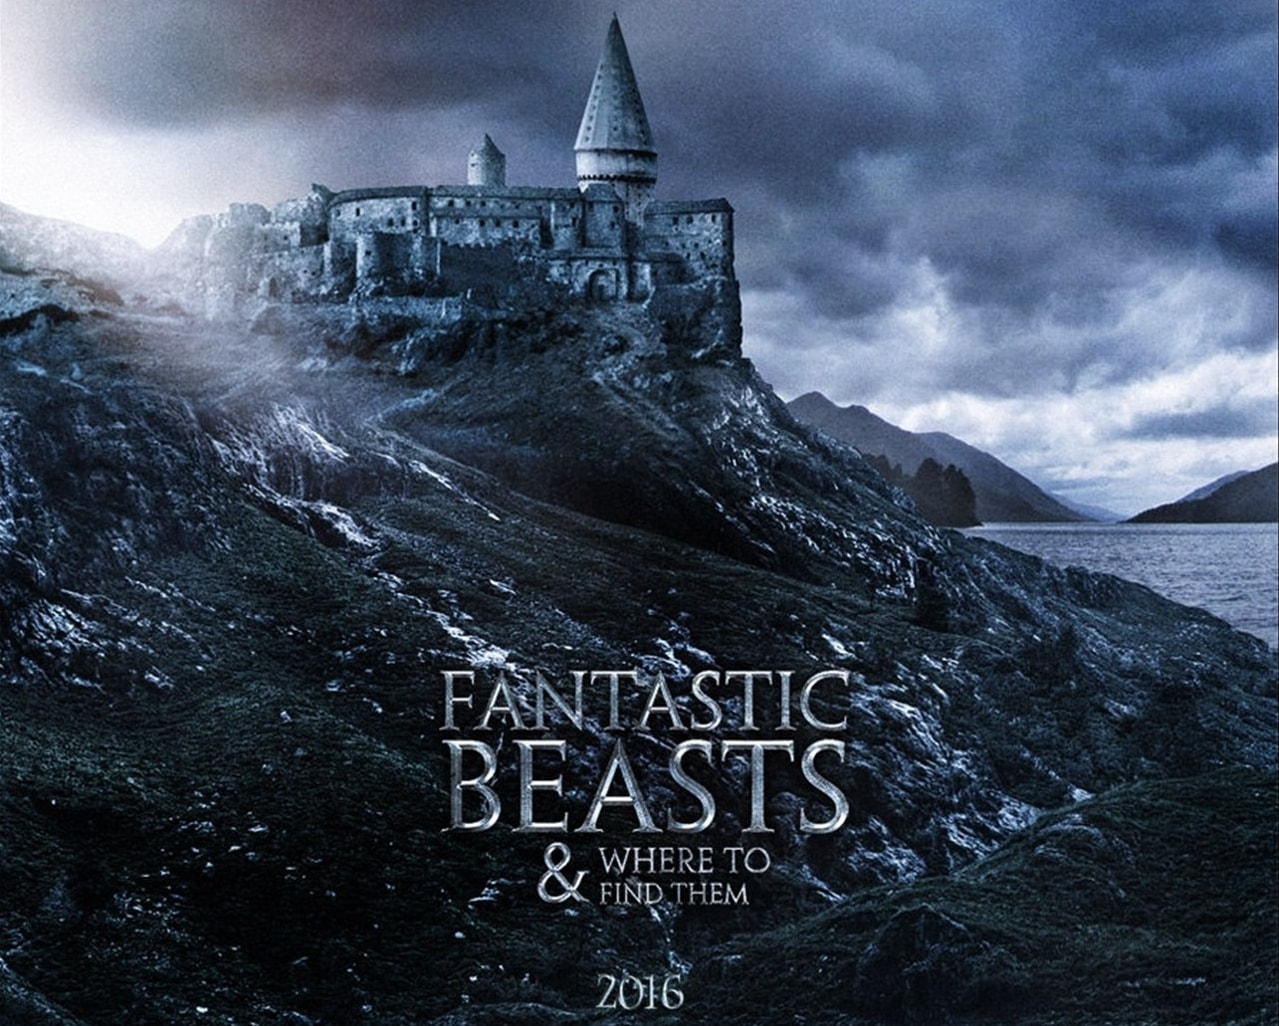 Fantastic Beasts And Where To Find Them Hd Wallpapers 7wallpapers Net